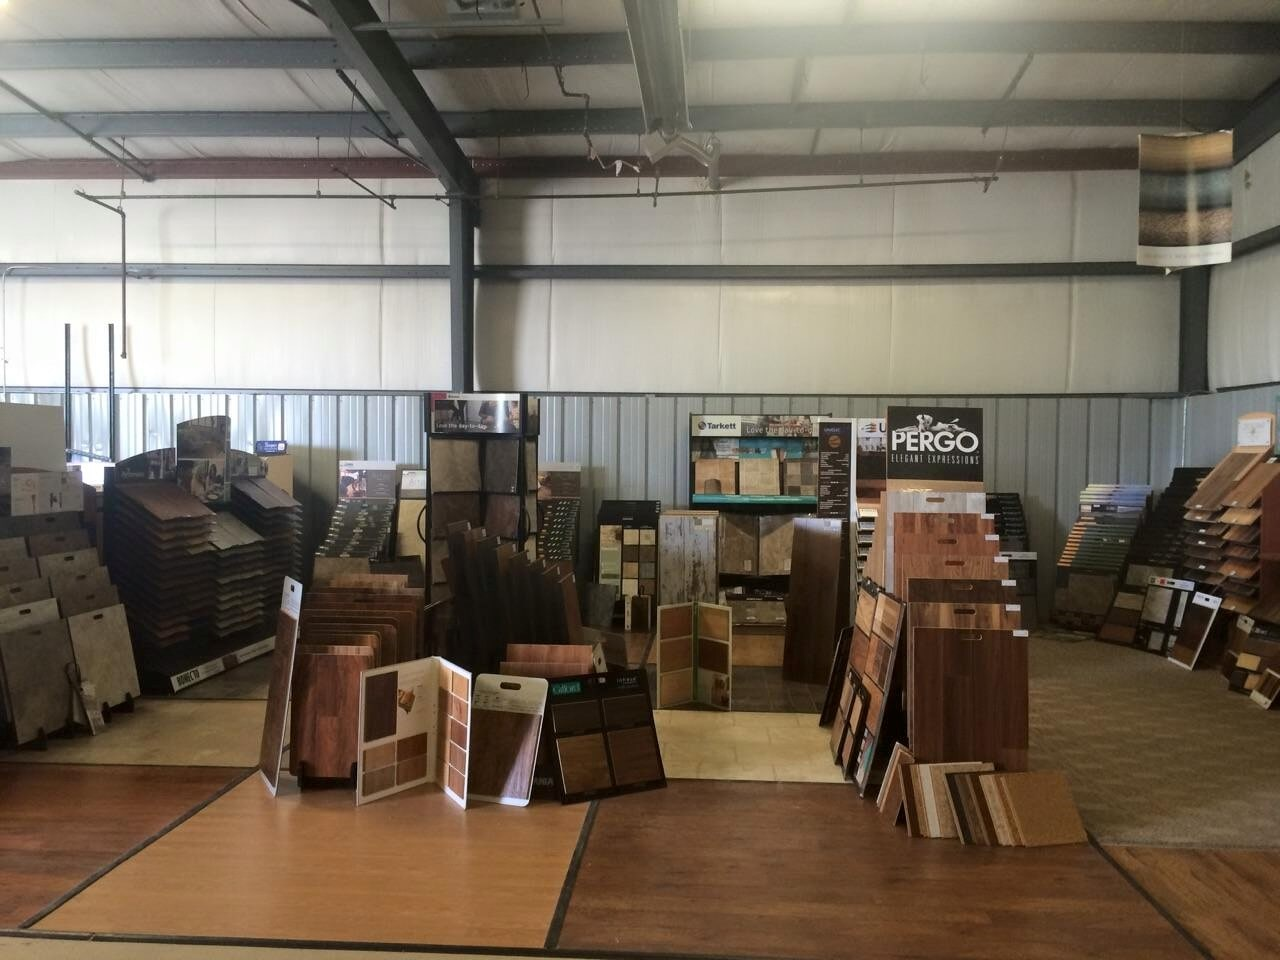 Pergo flooring display and more at our Defiance, OH location